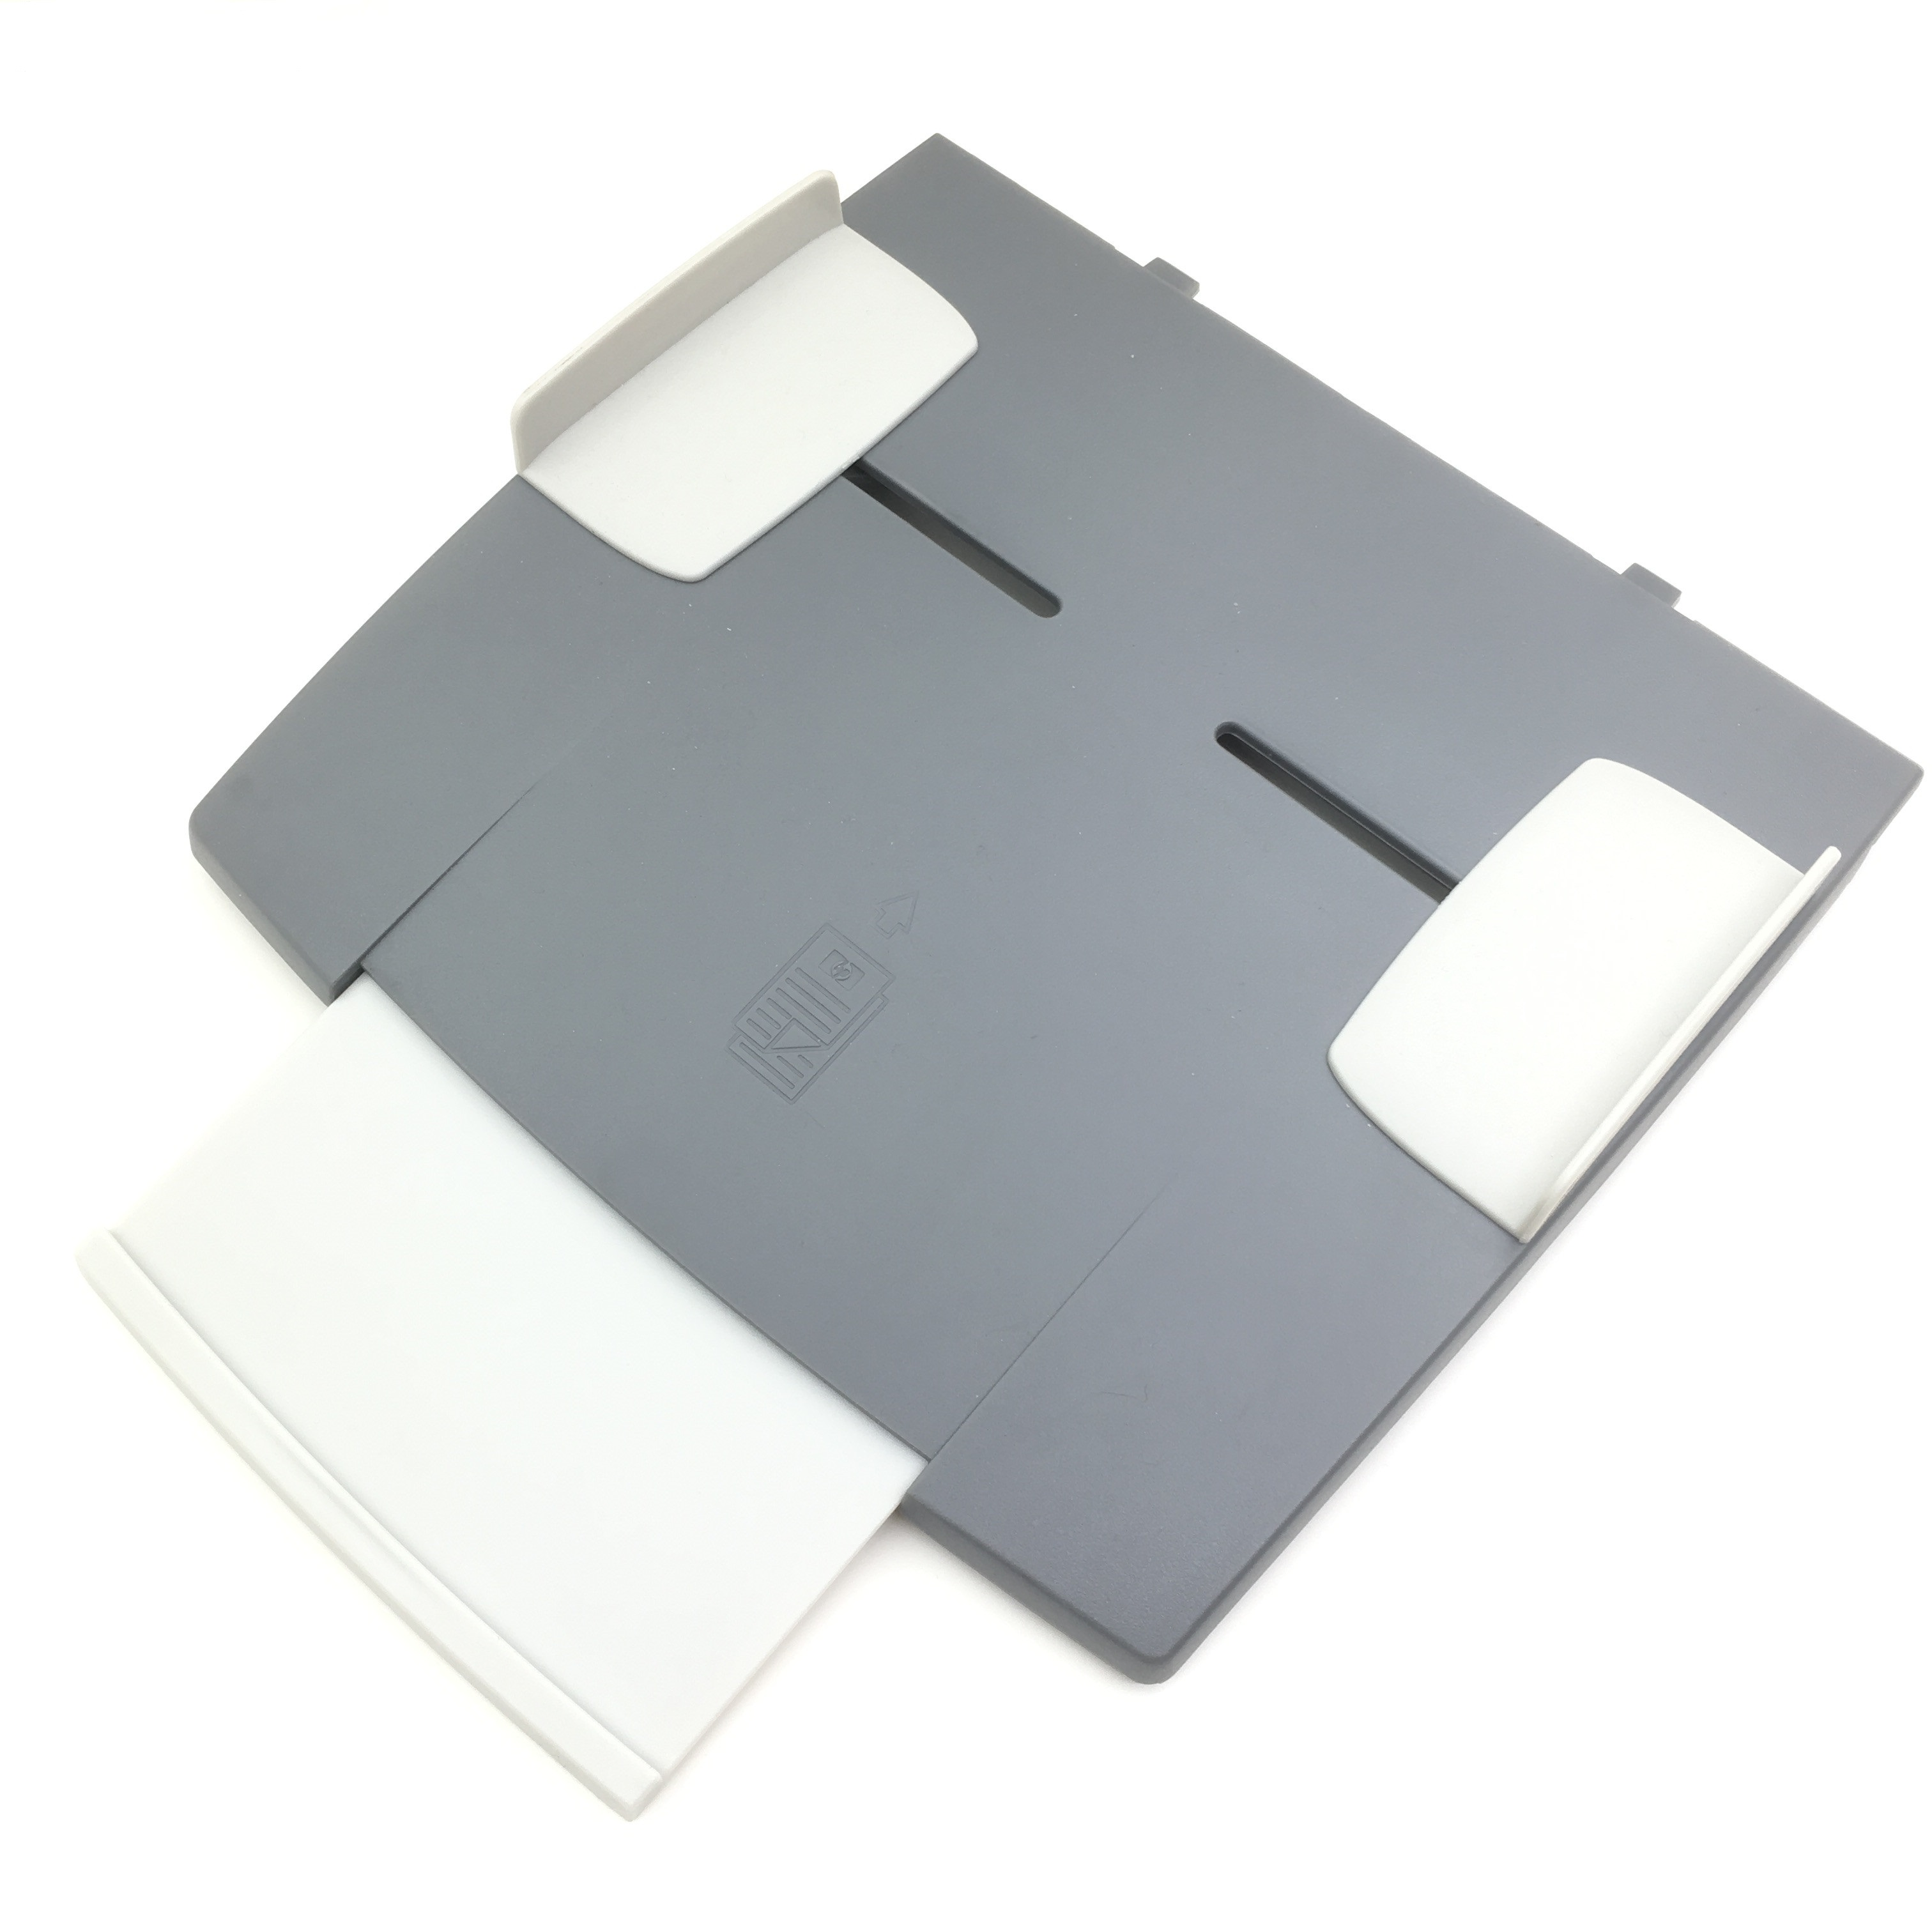 1X Q6500 60119 Q3948 60214 CB534 60112 ADF Paper Input Tray for HP M1522 CM1312 CM2320 3390 3392 M2727 2820 2840 3050 3052 3055|Printer Parts| |  - title=